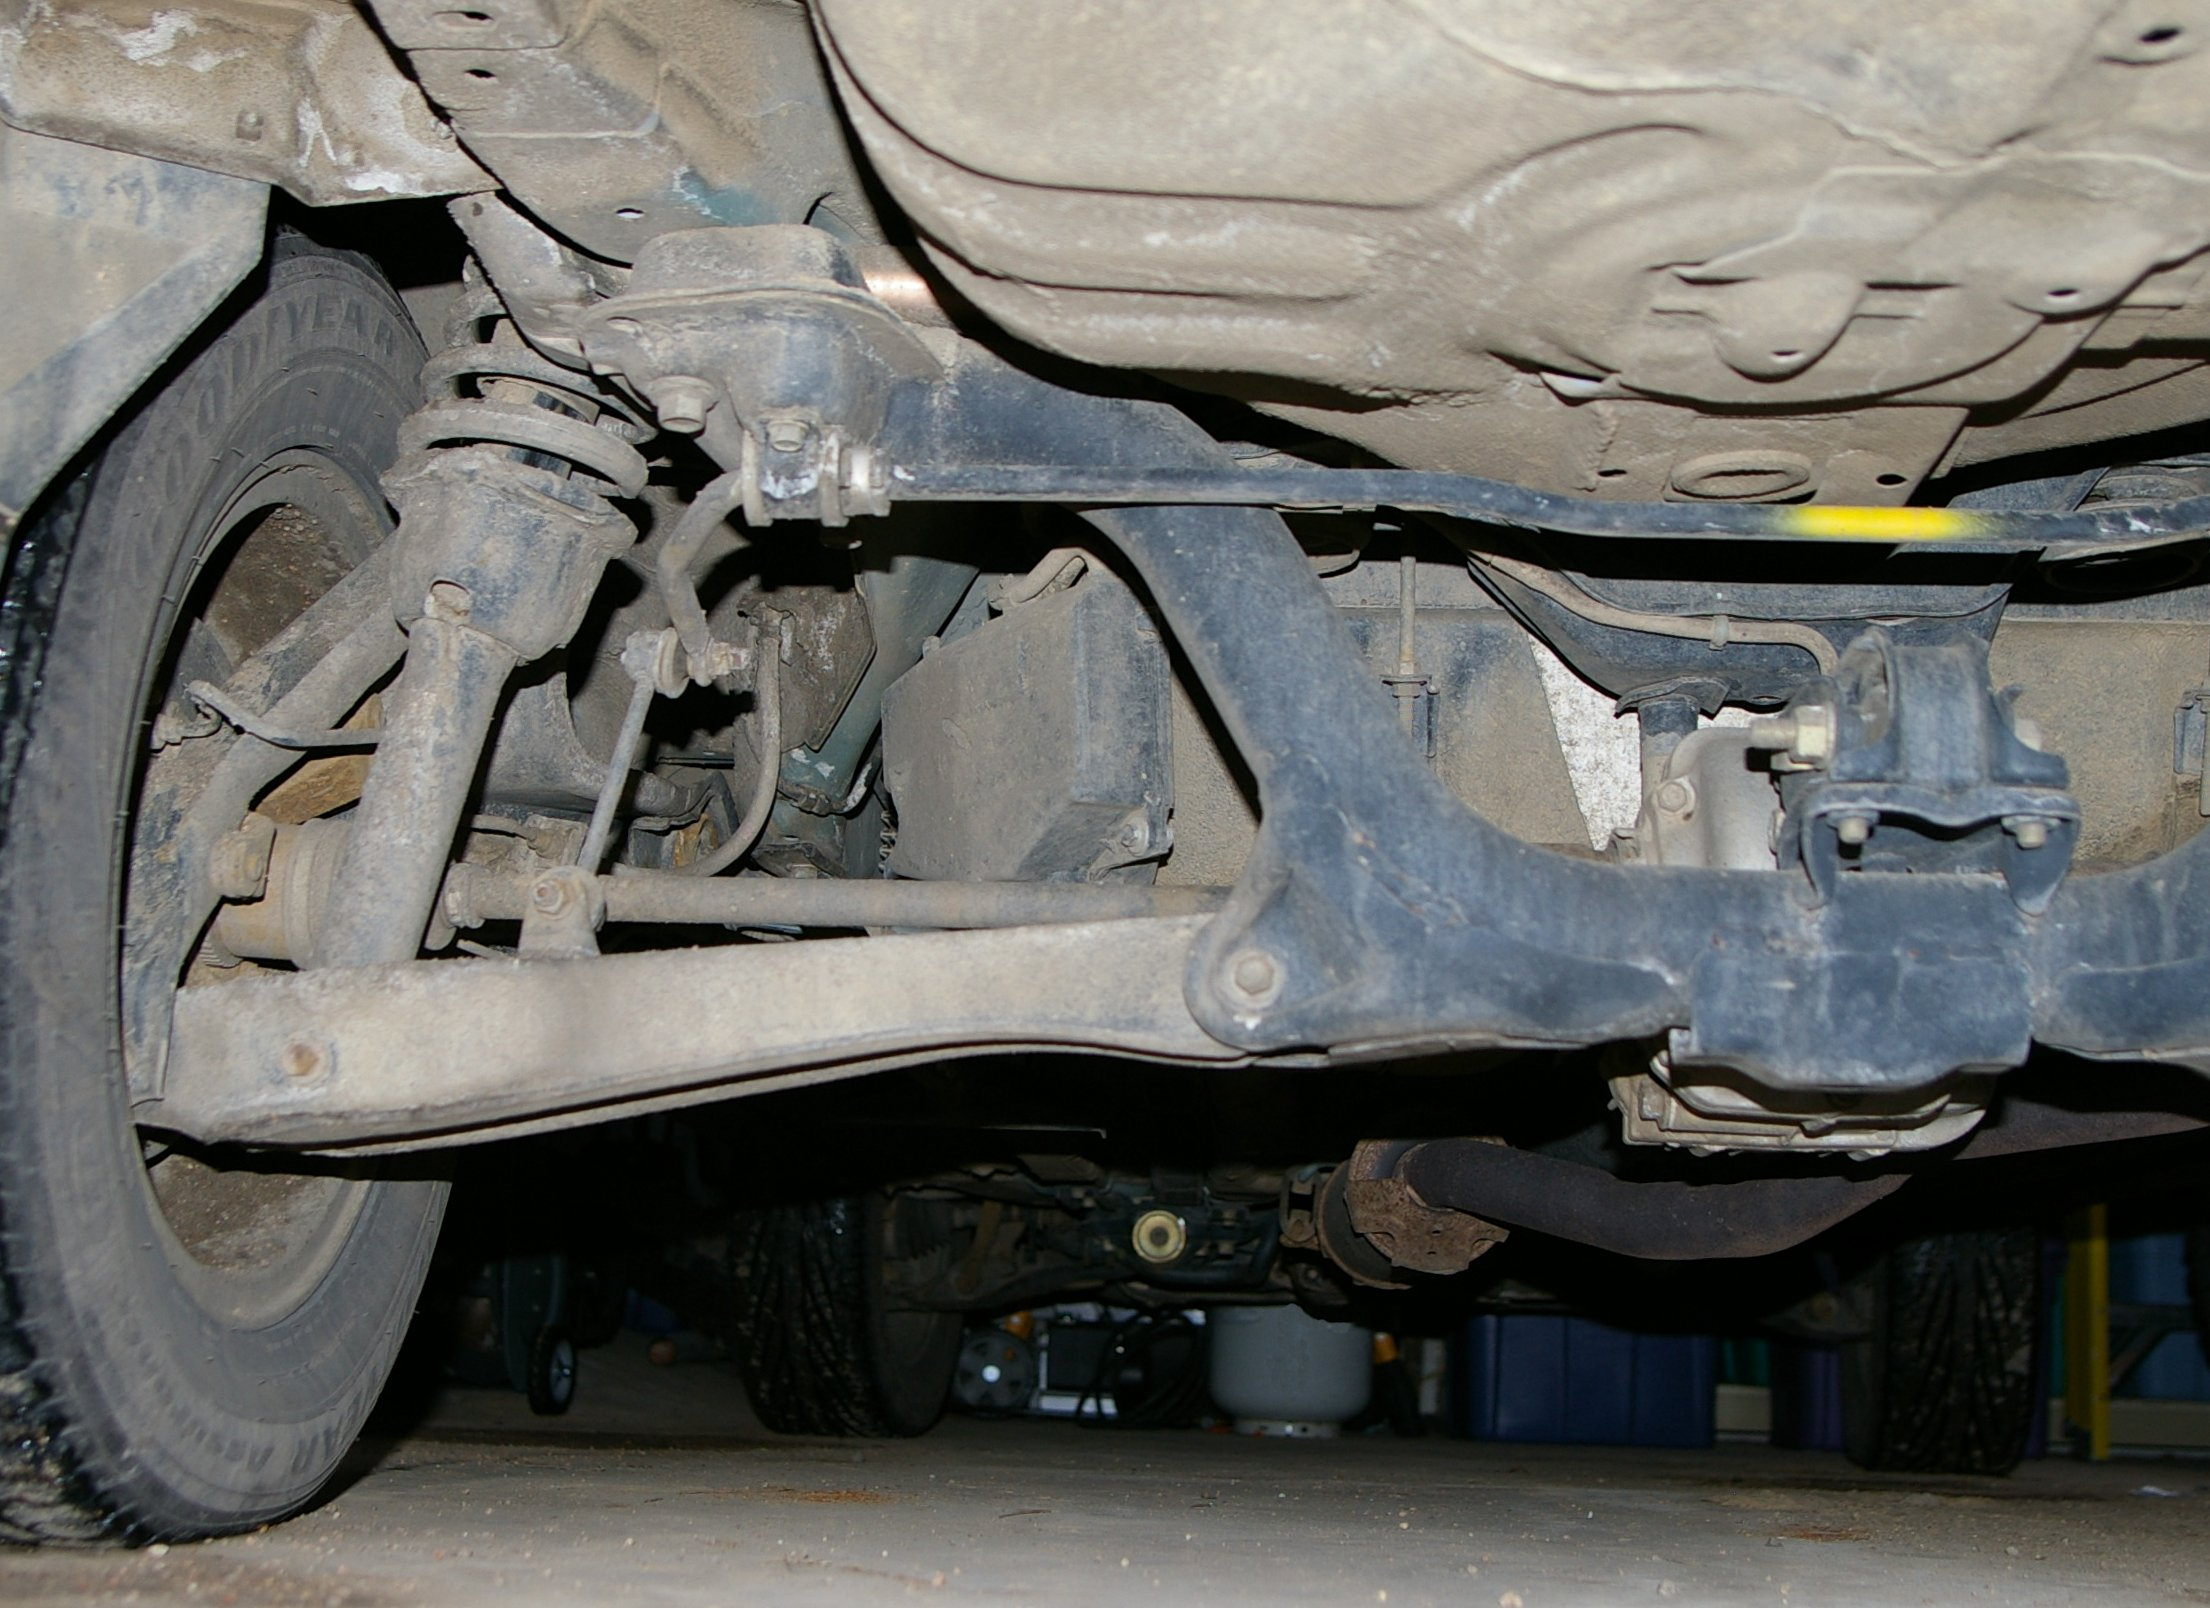 A multi-link type rear independent suspension on an AWD car. The anti-roll bar has some yellow paint on it.